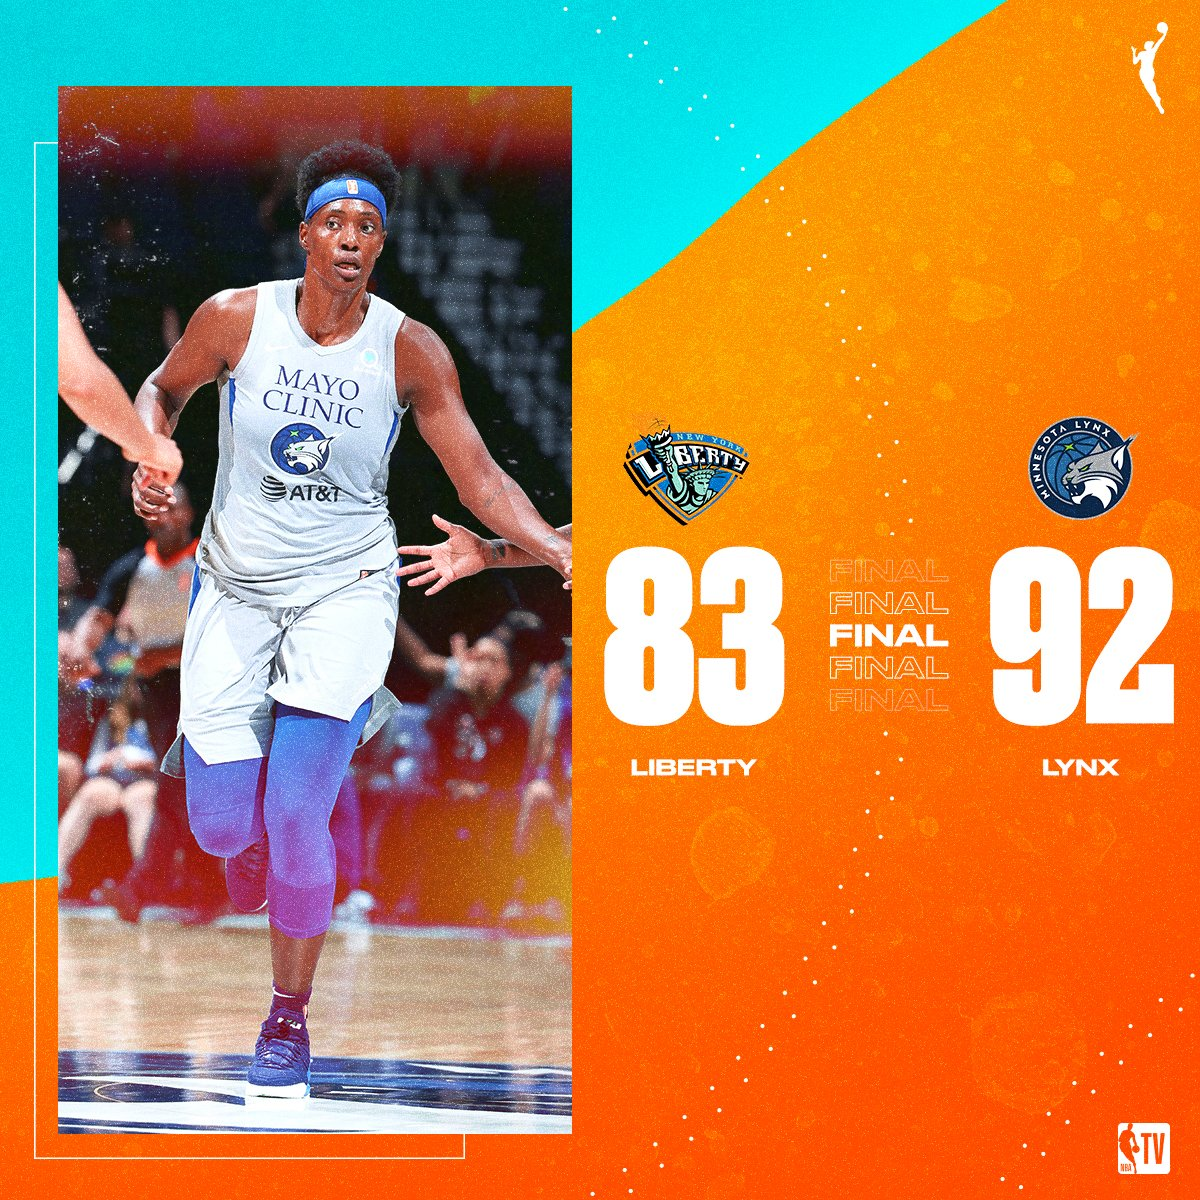 The @minnesotalynx get back to winning ways by defending home court! 💪